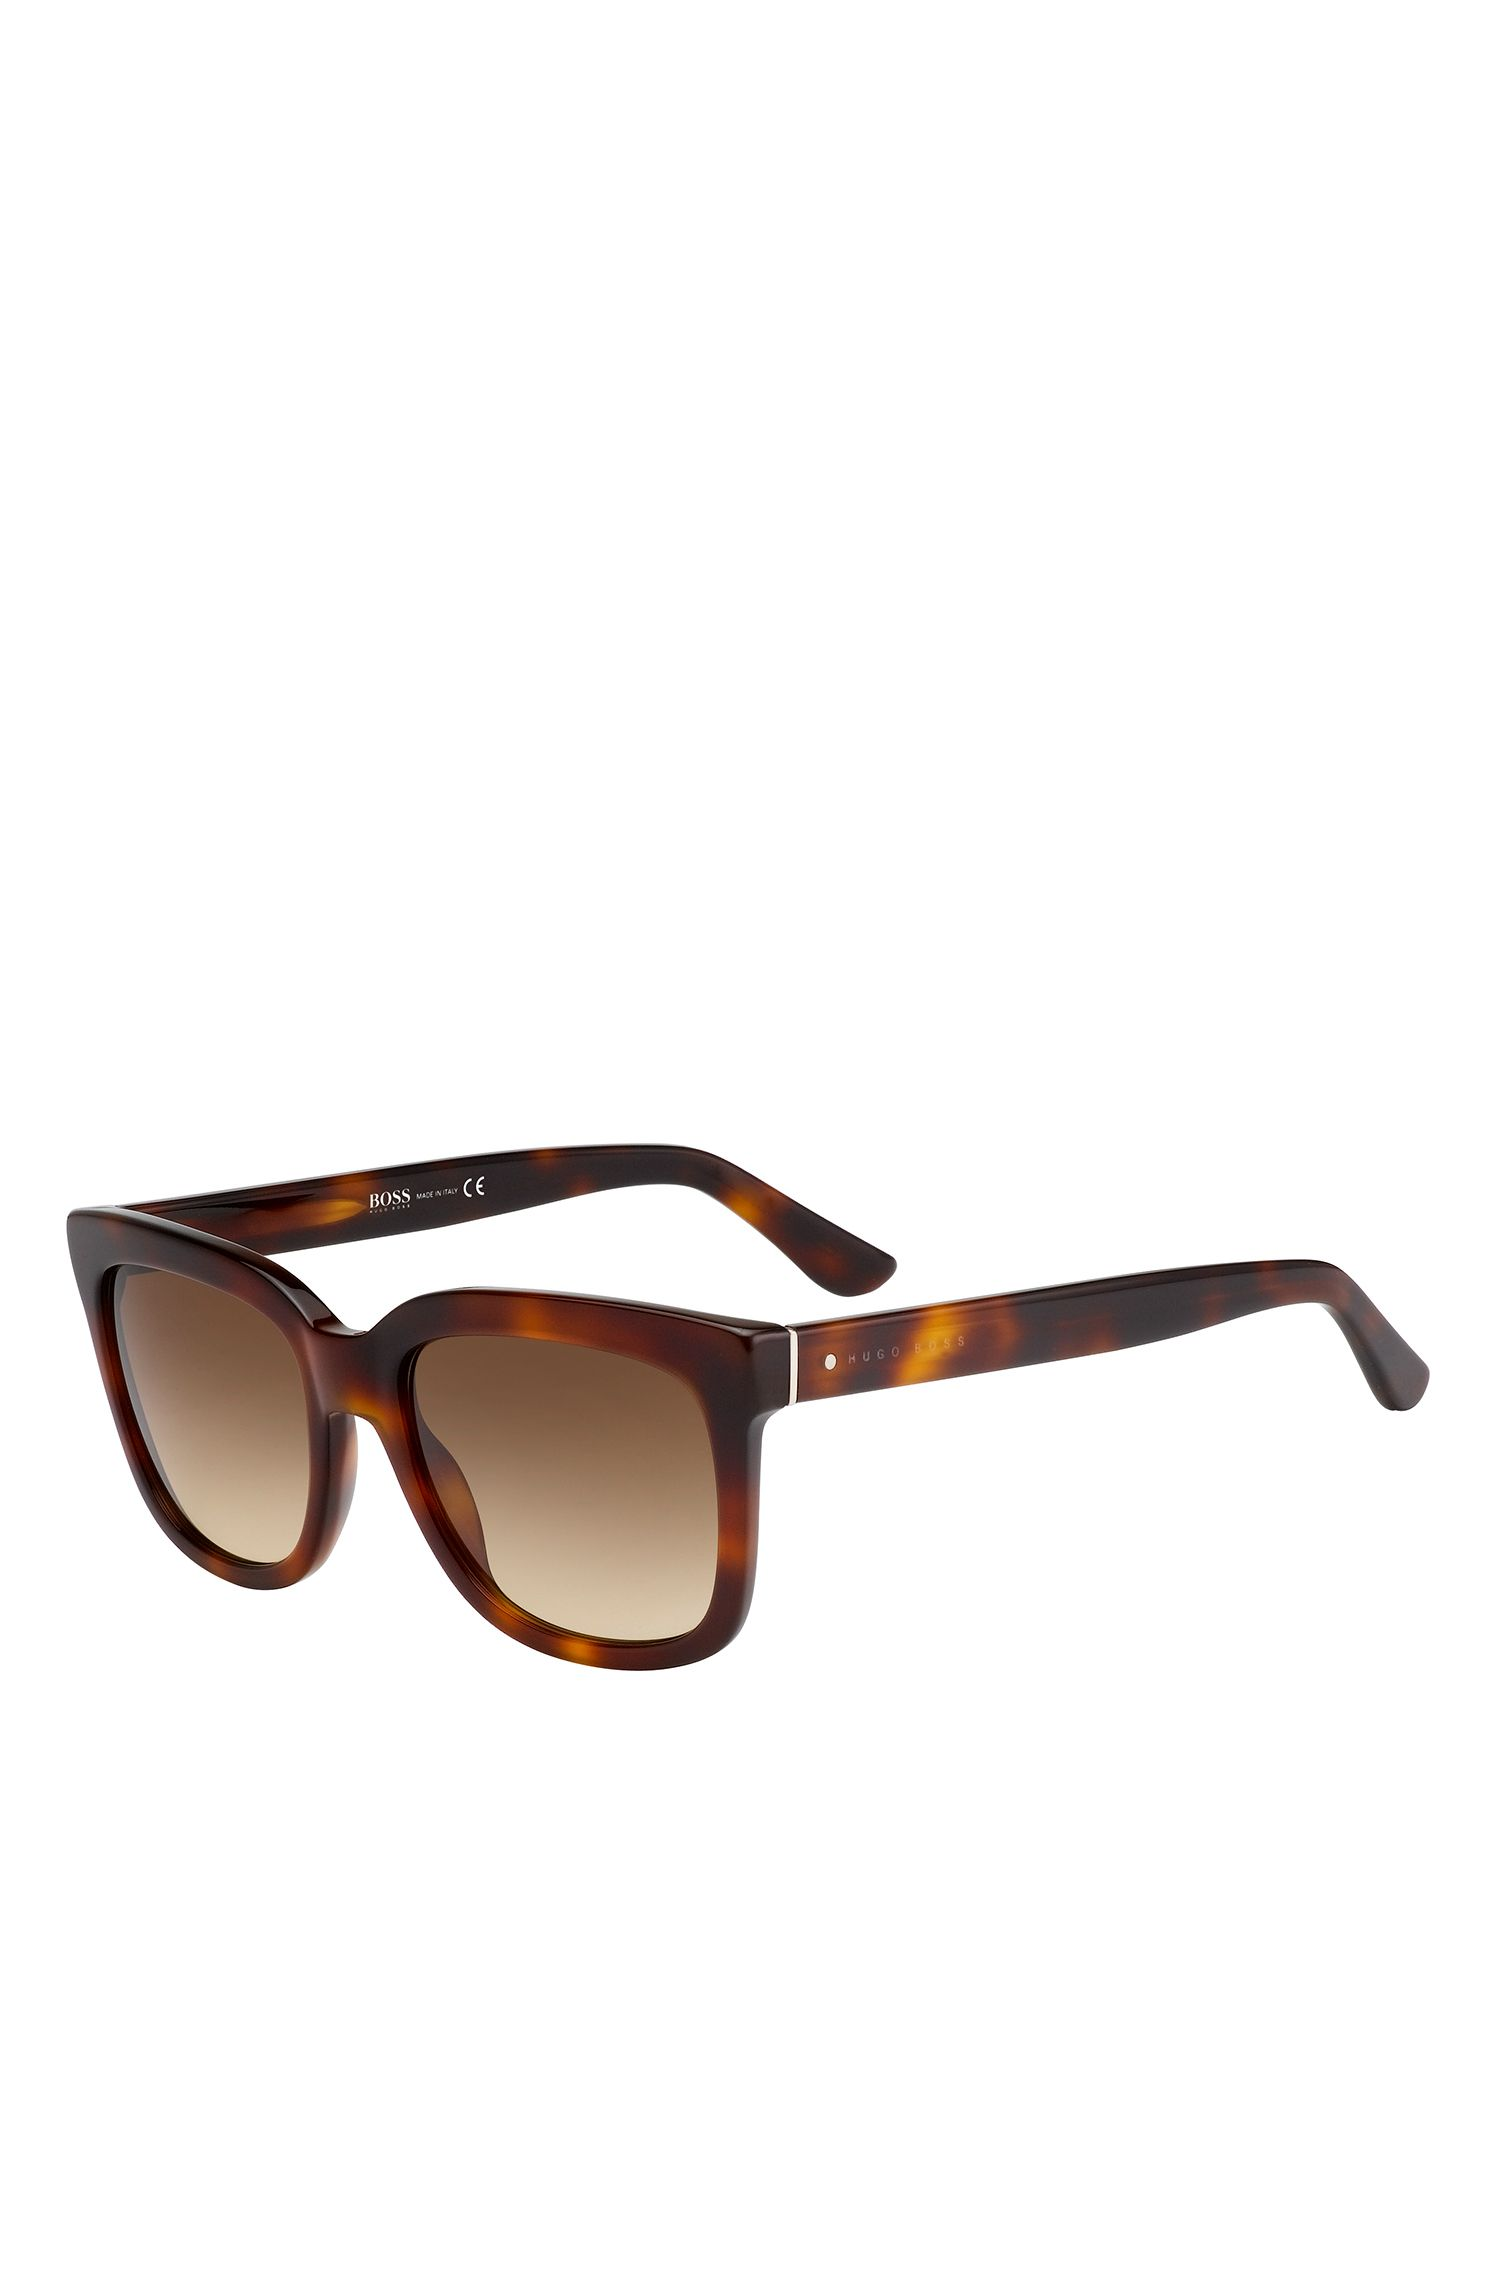 Brown Lens Rectangular Sunglasses | BOSS 0741S